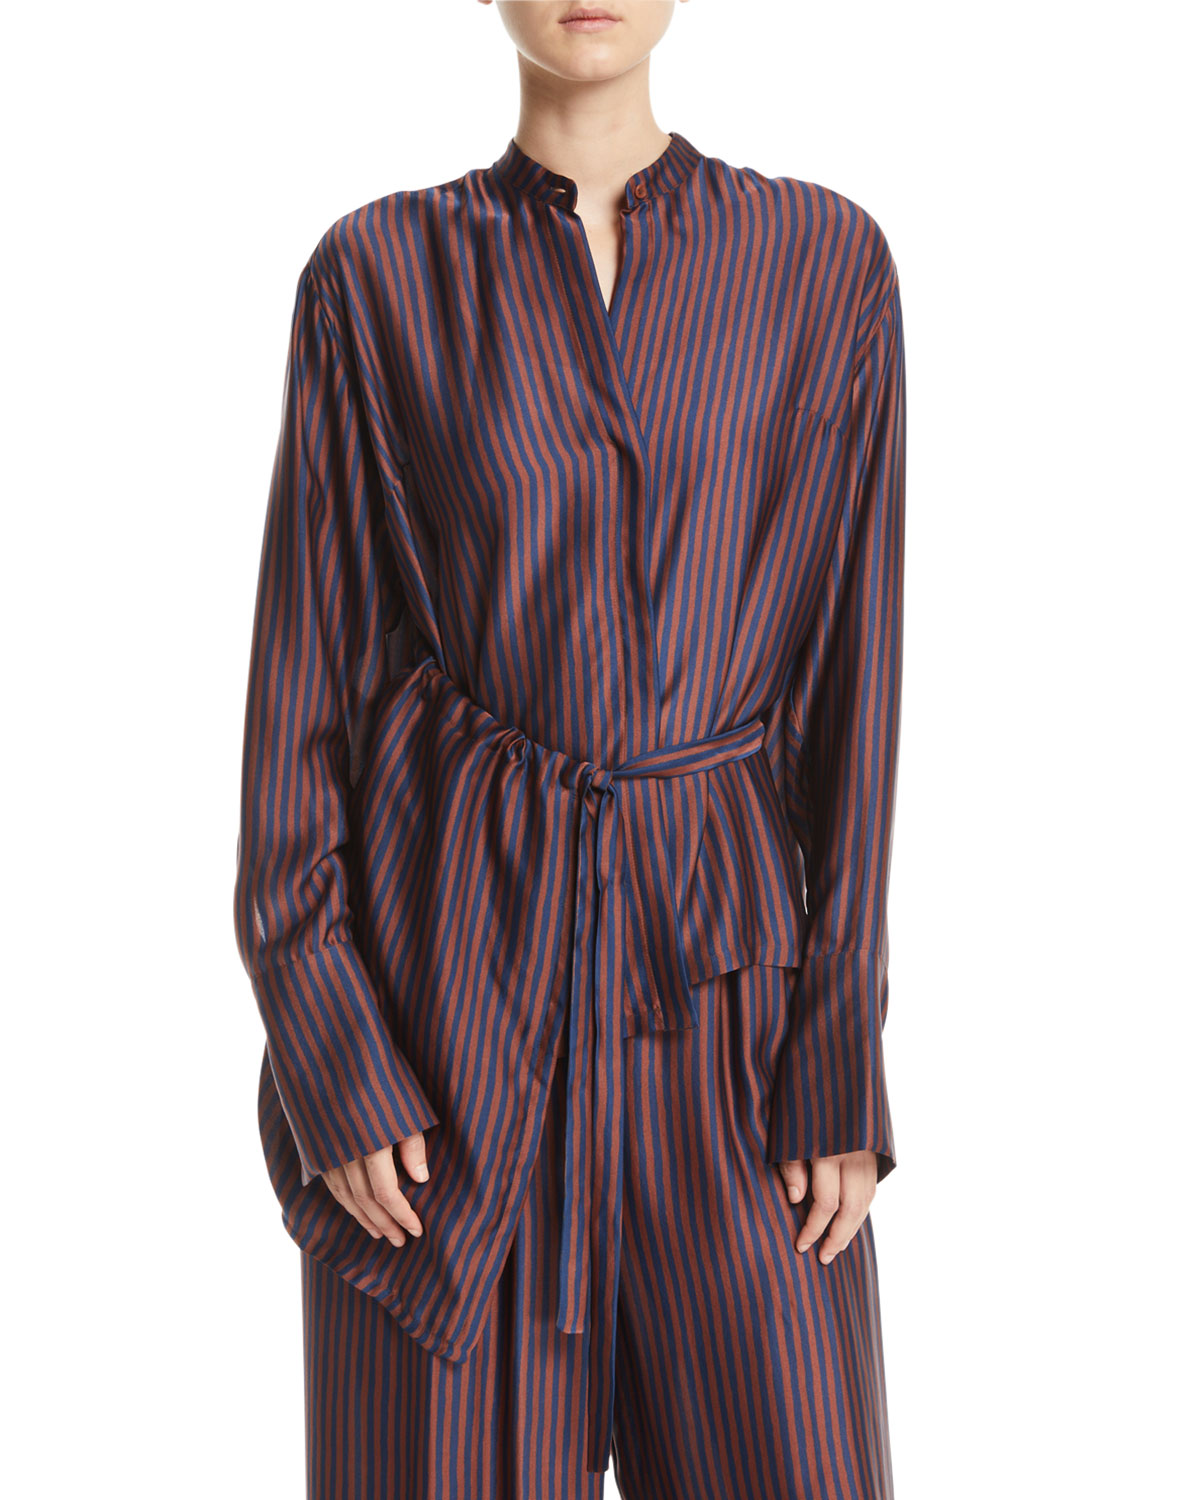 CHRISTIAN WIJNANTS Tipha Striped Silk Belted Top in Brown